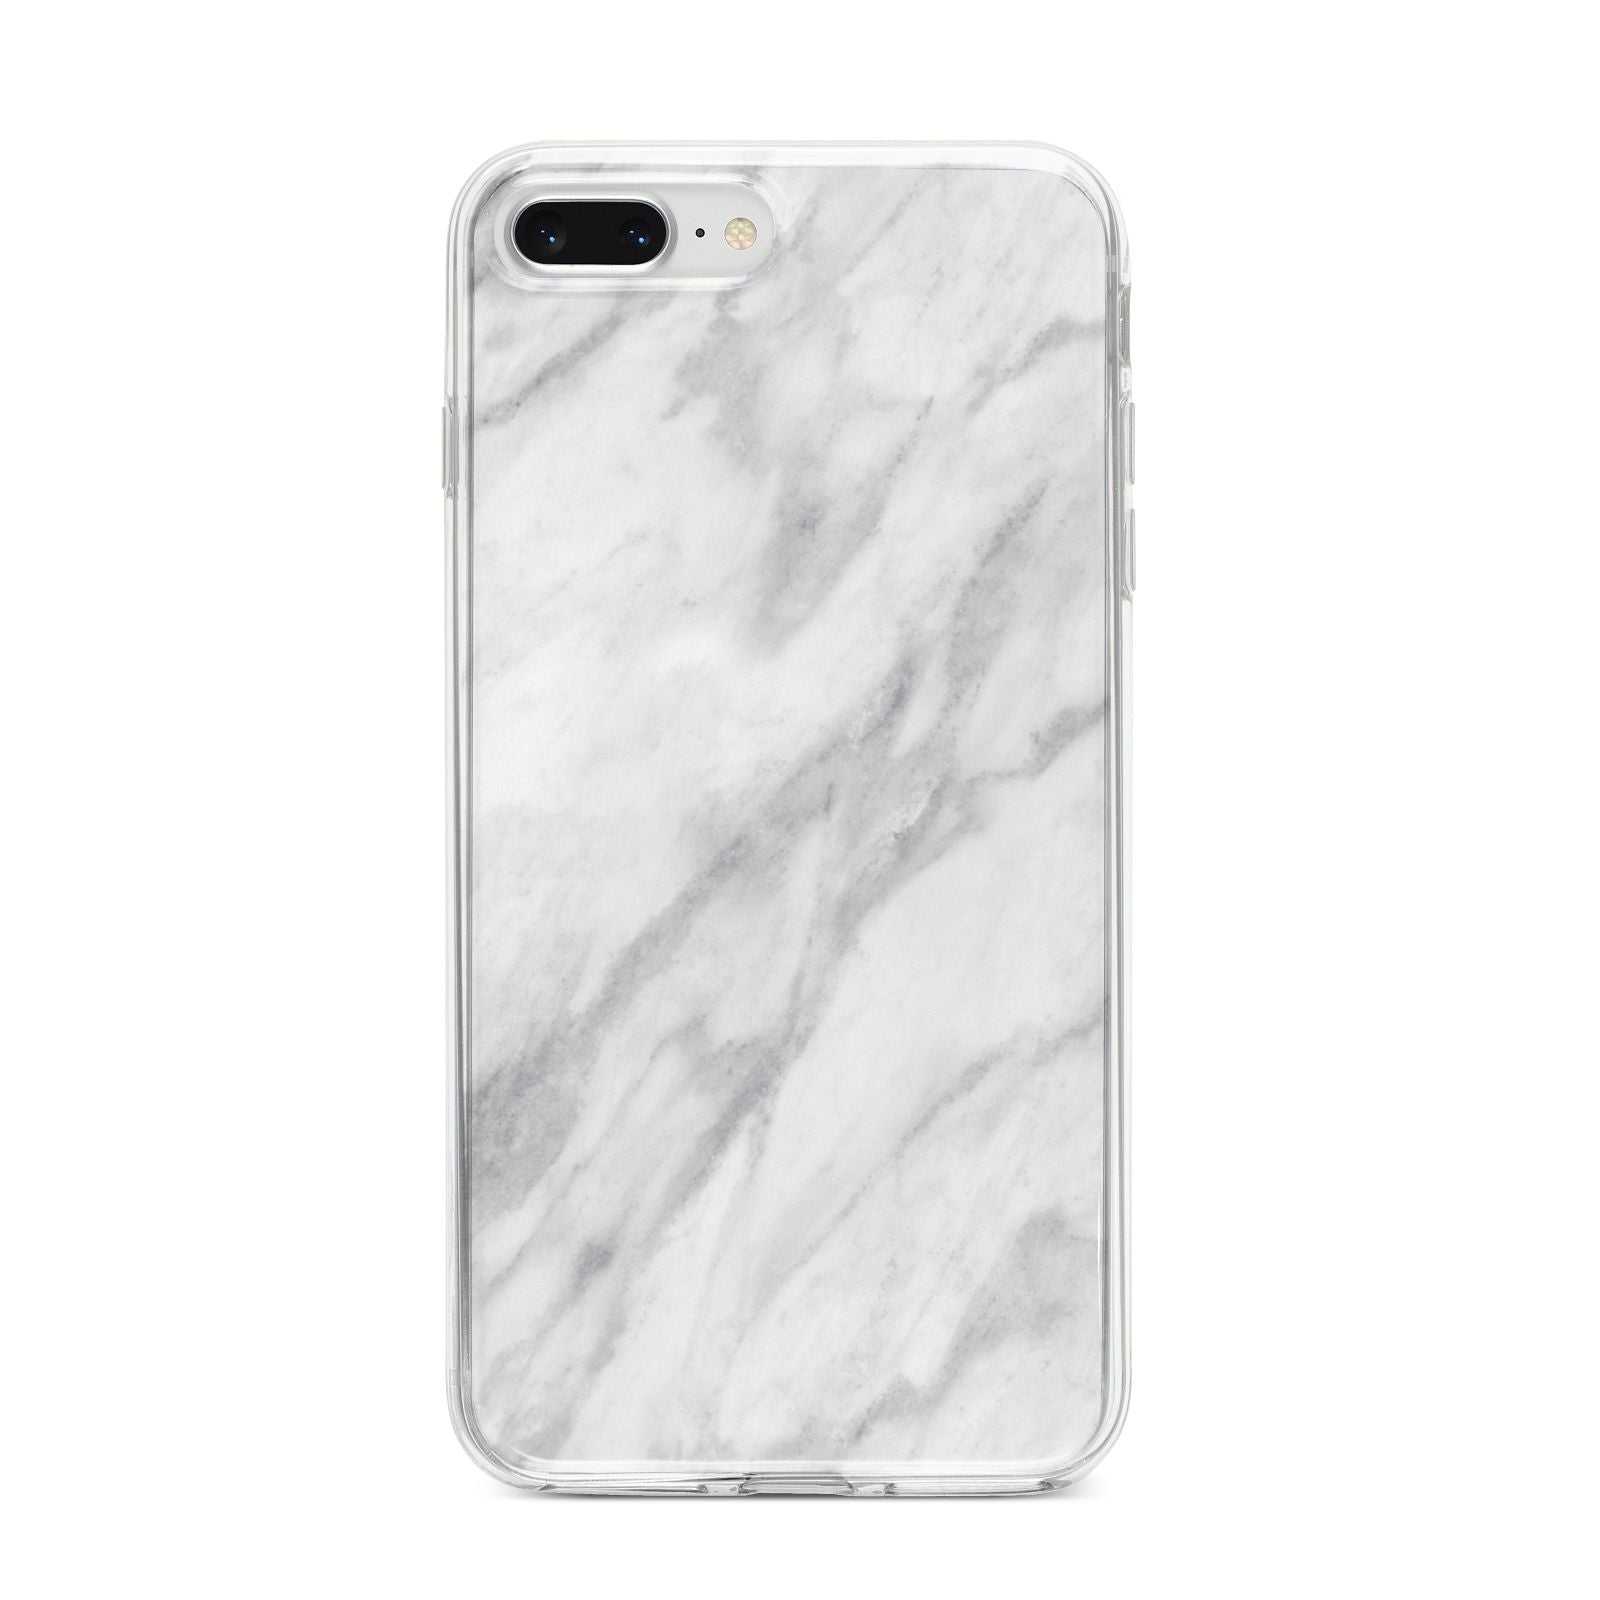 Faux Marble Effect Italian iPhone 8 Plus Bumper Case on Silver iPhone